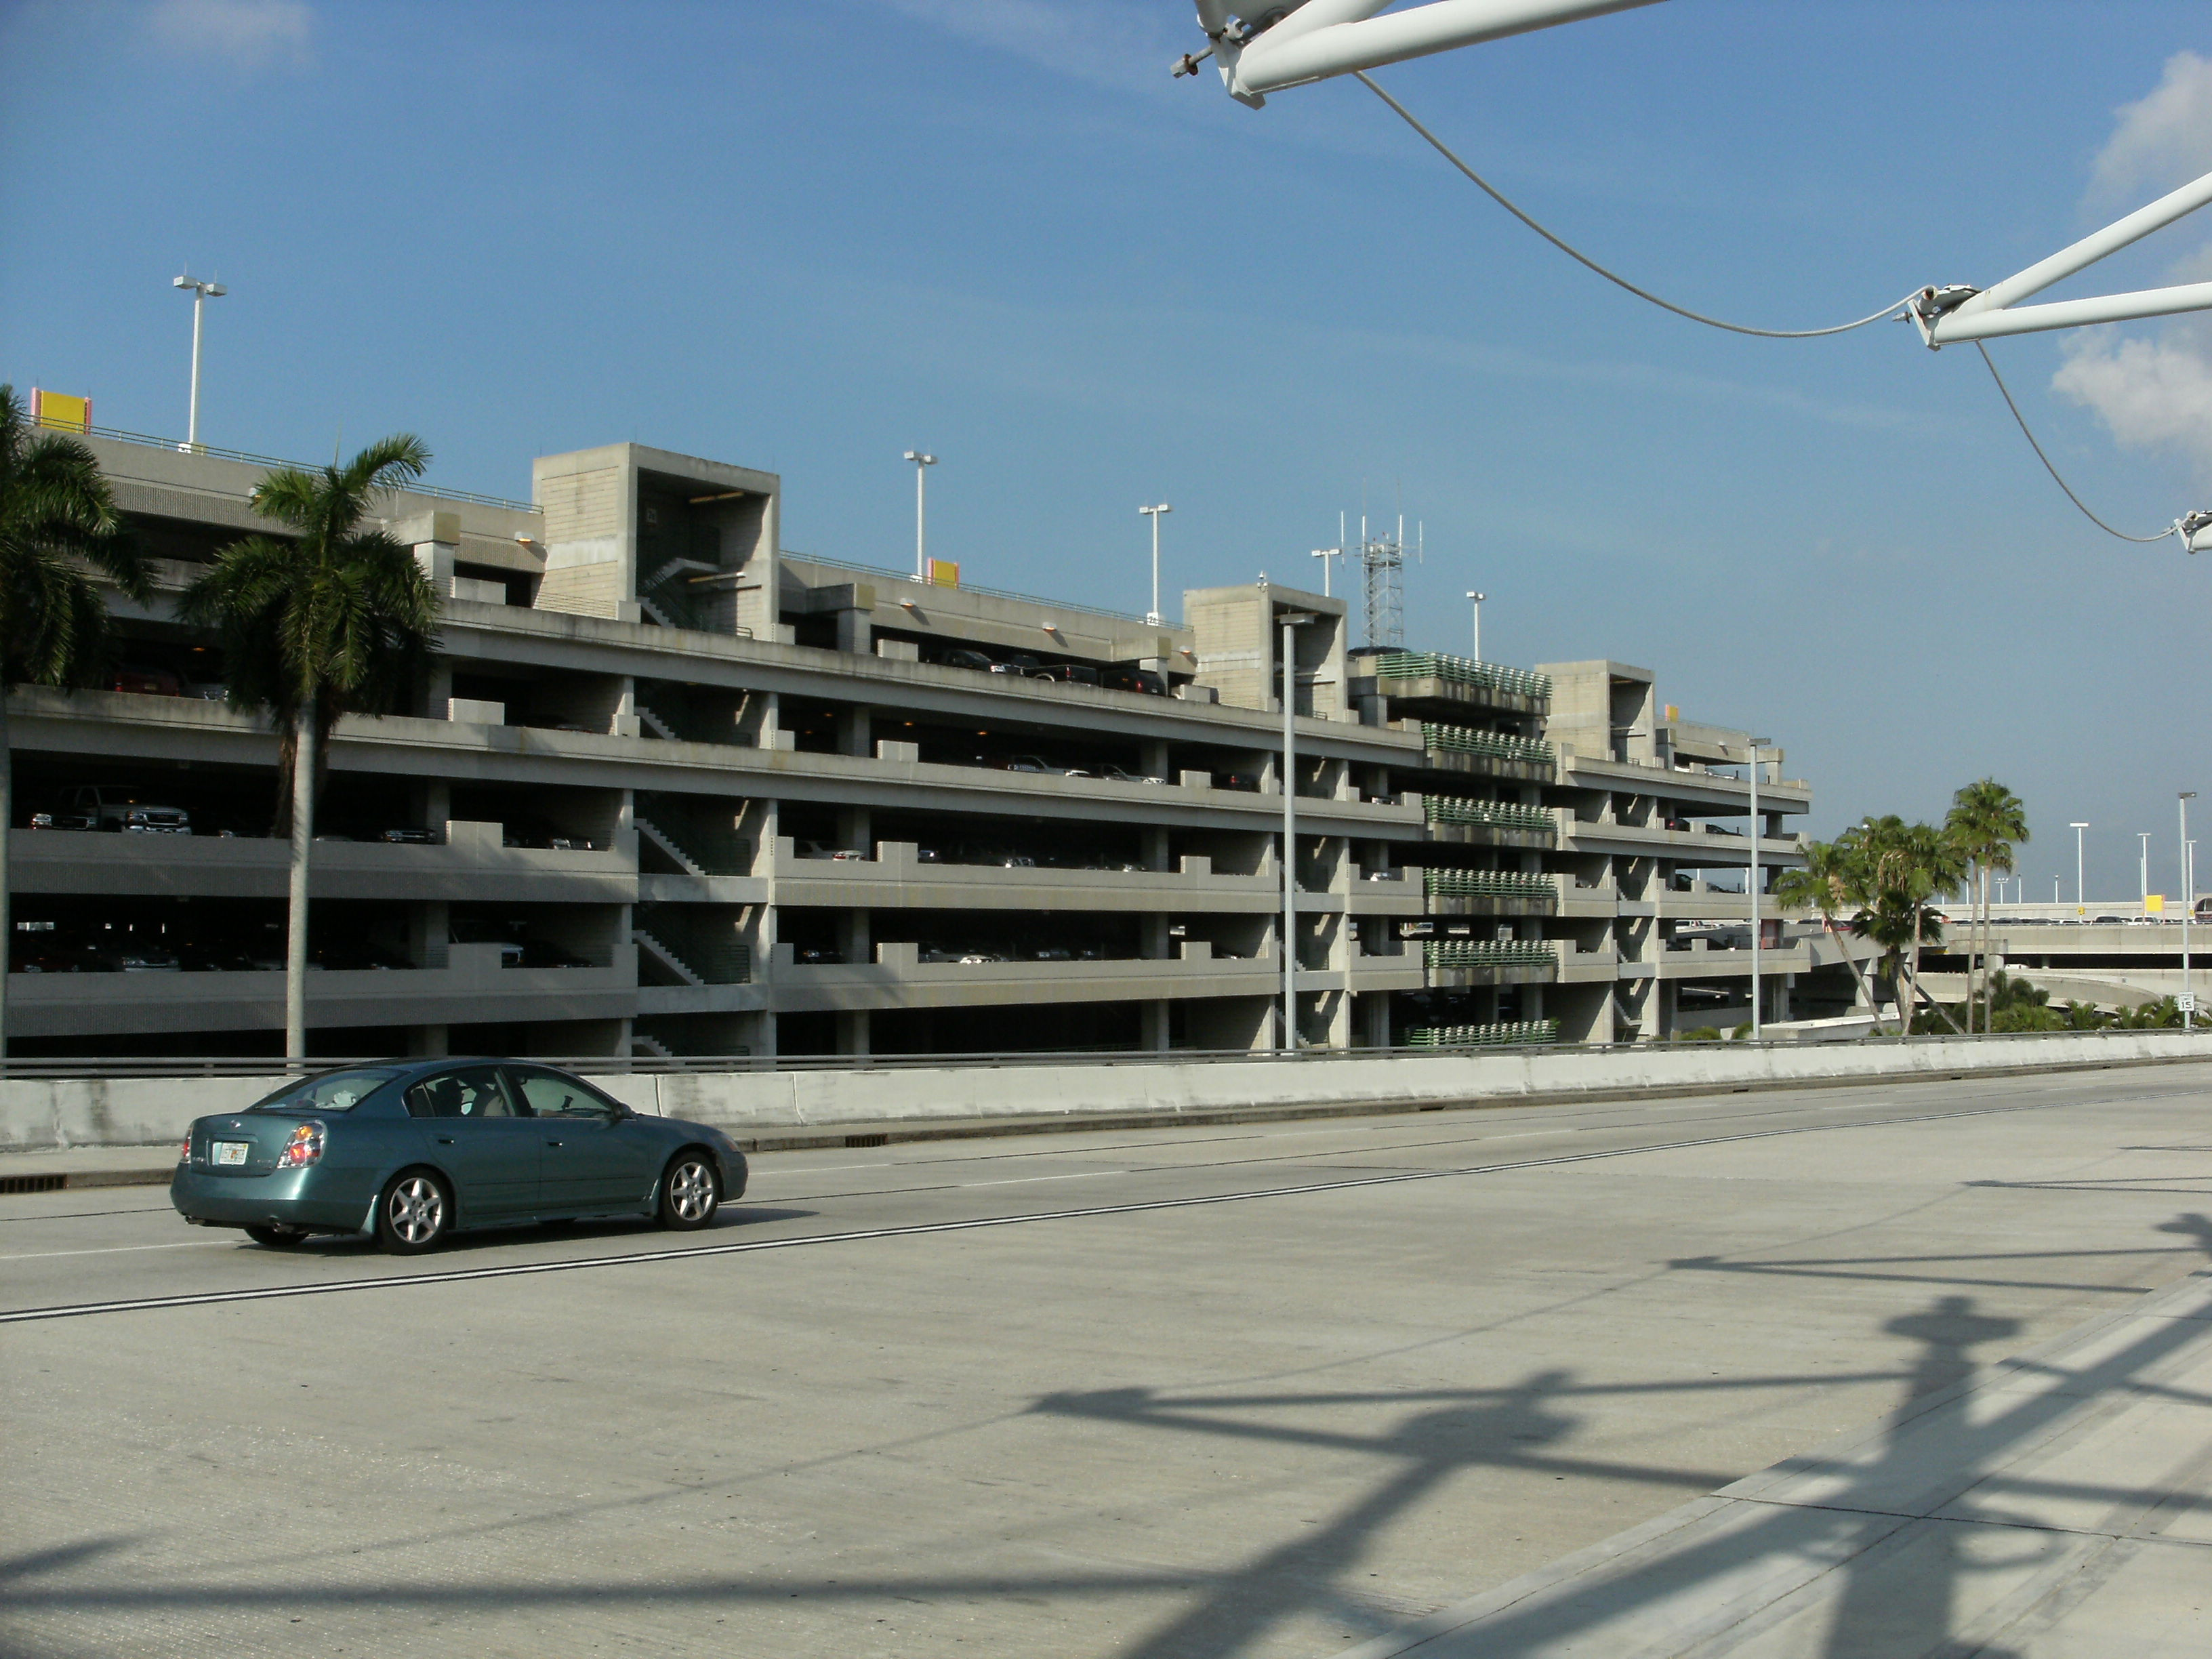 Hibiscus Parking Garage